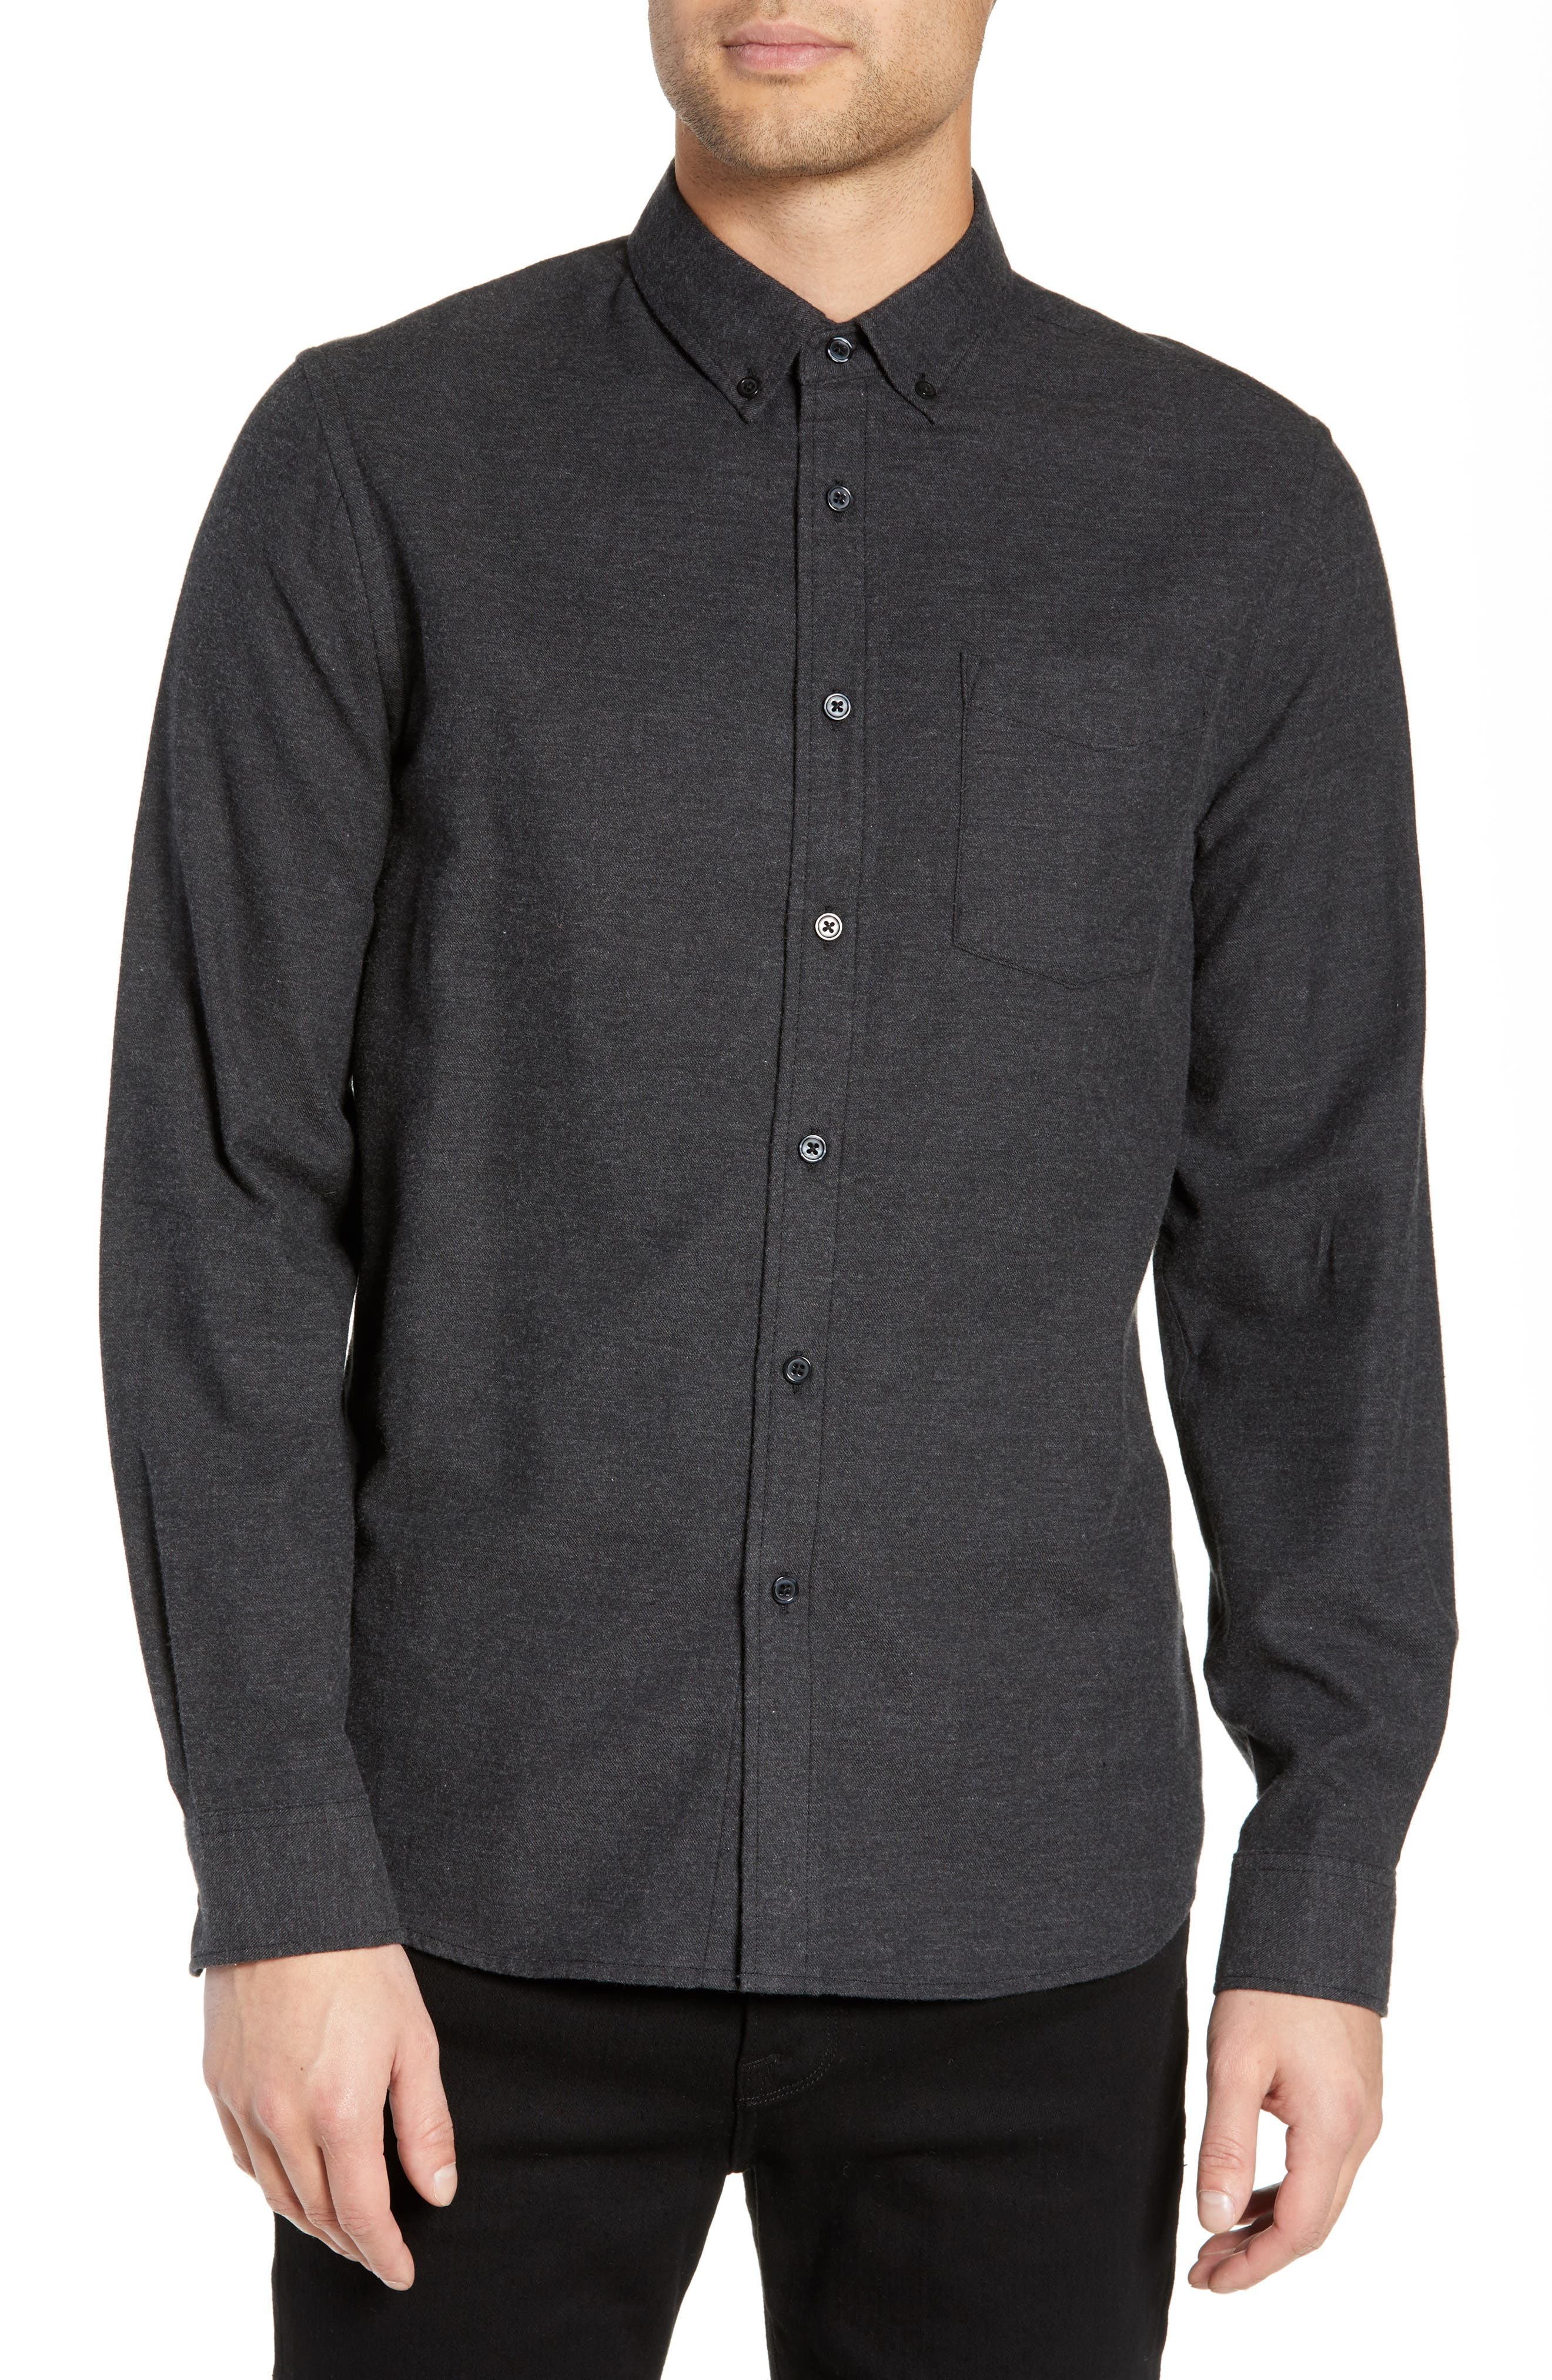 Saturdays Nyc Crosby Solid Flannel Shirt, Black